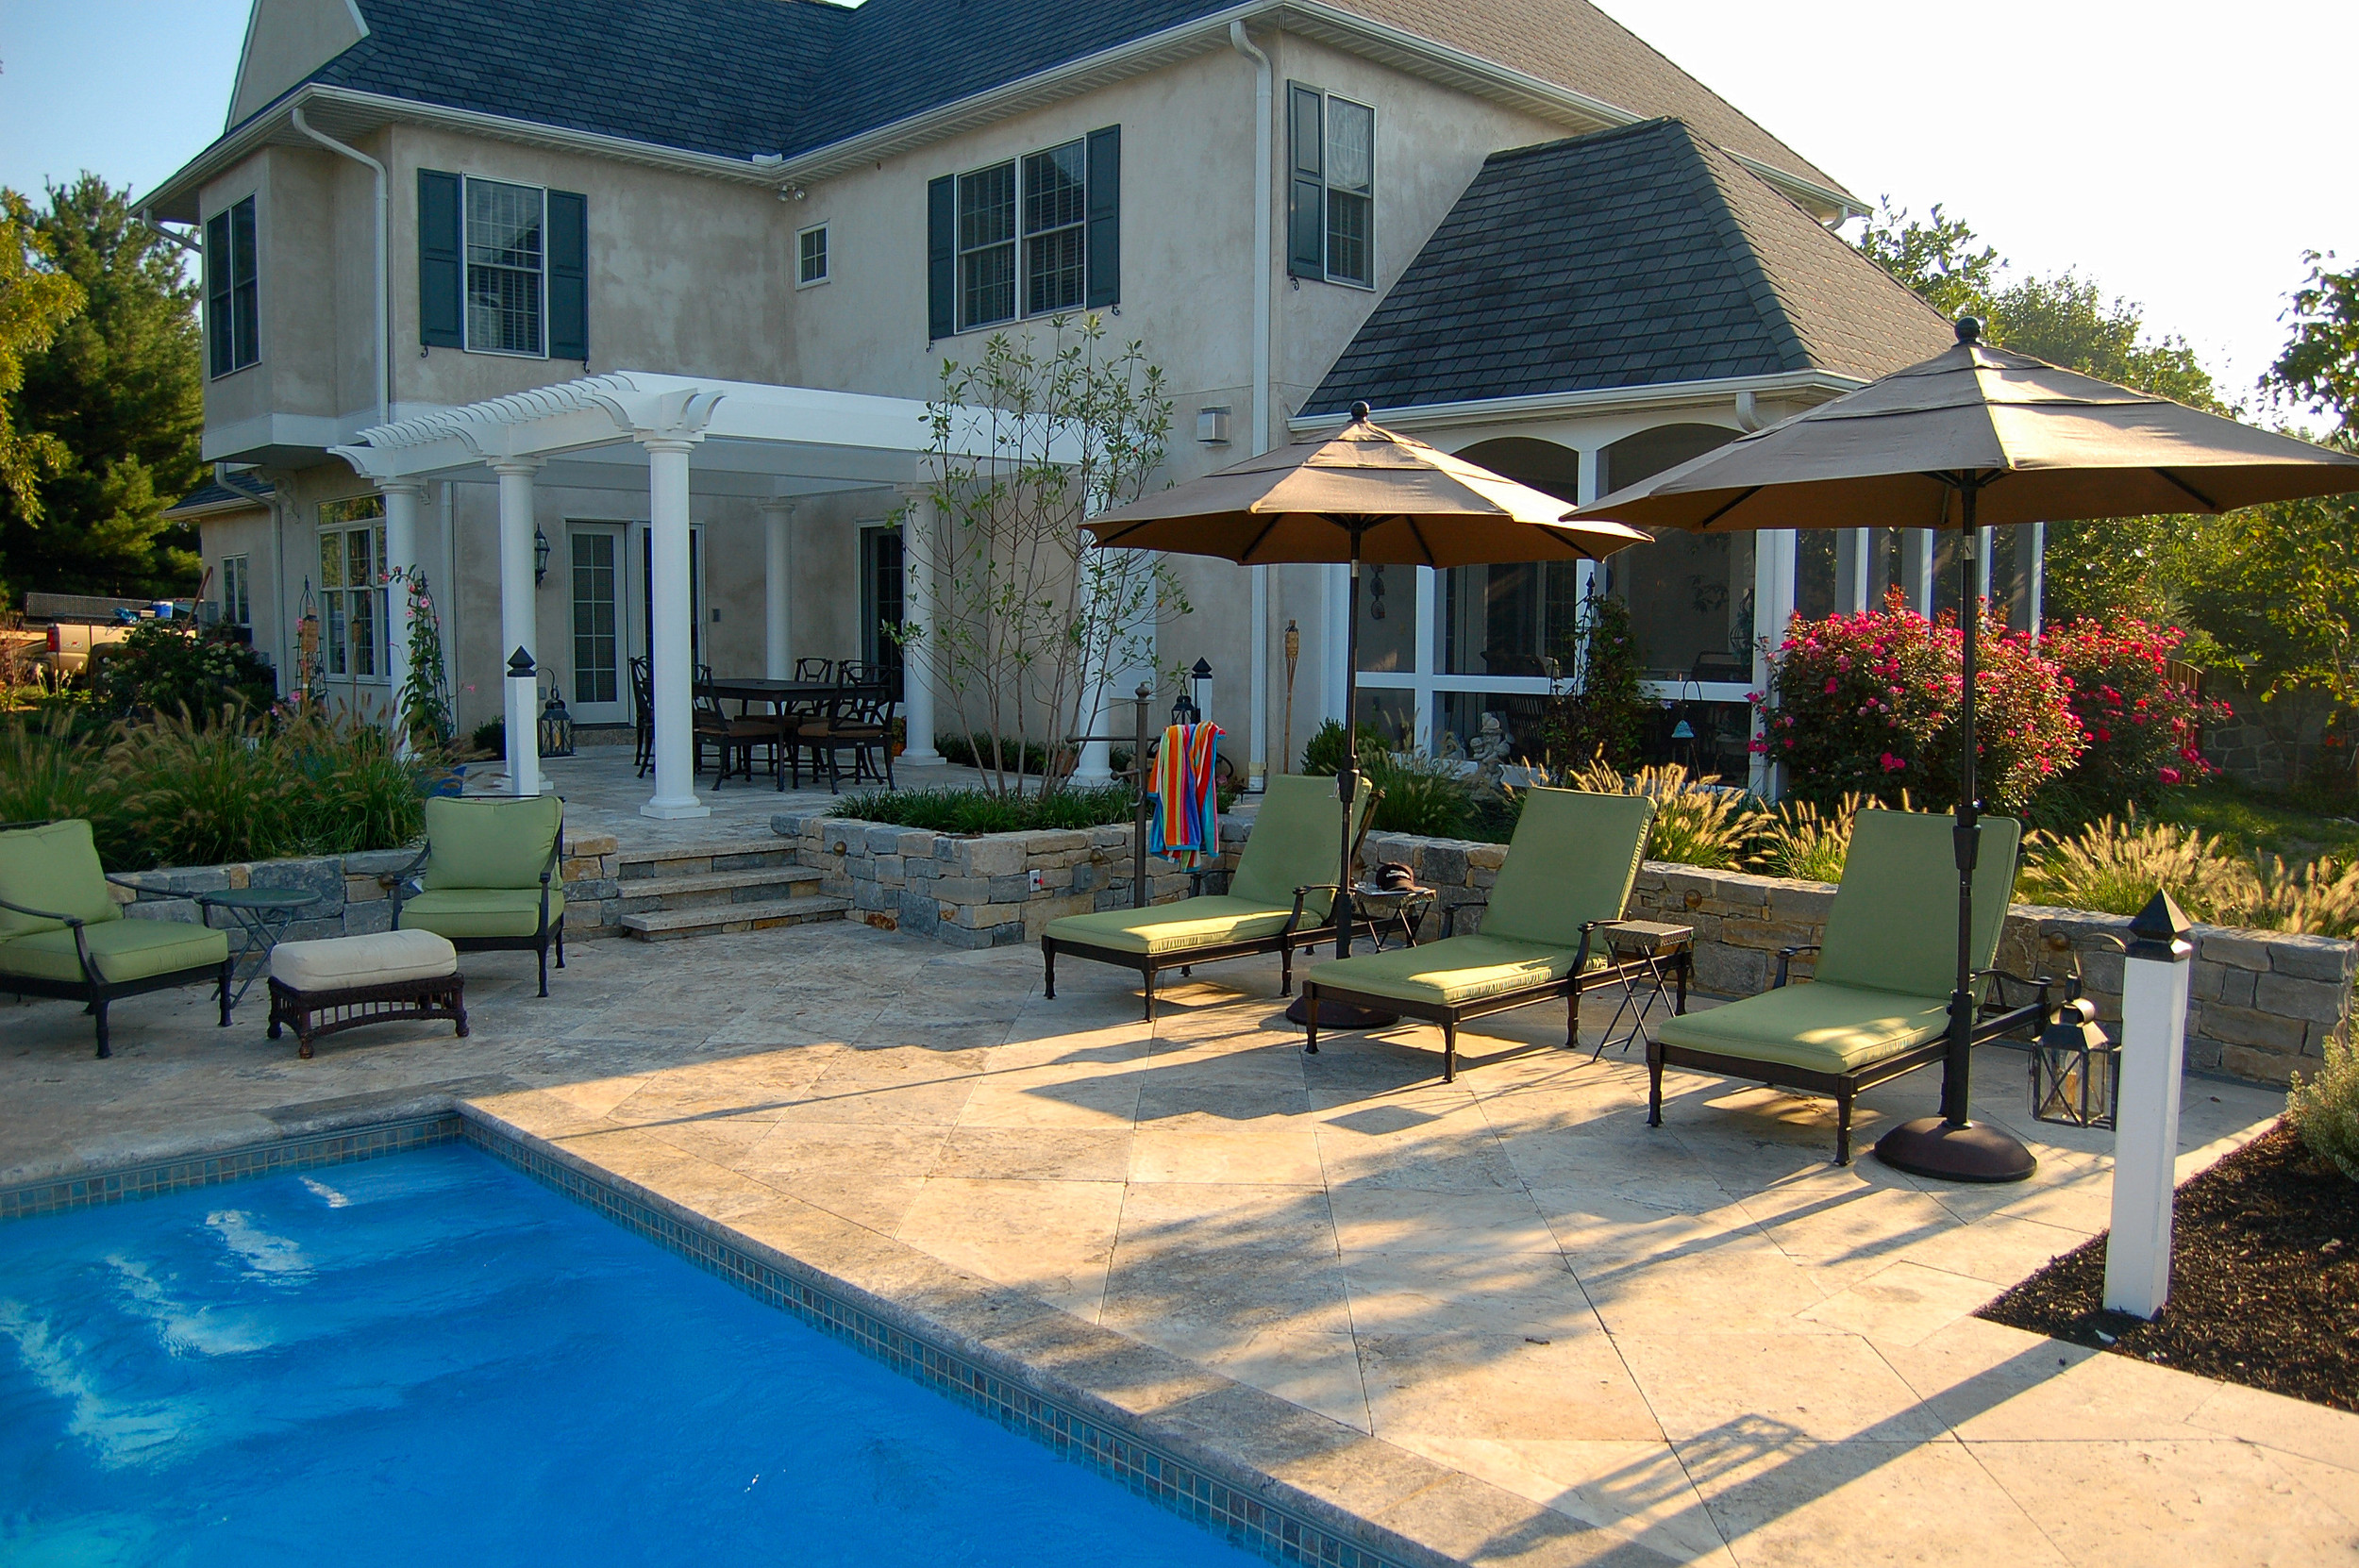 Landscape Design and Swimming Pool Lancaster, PA